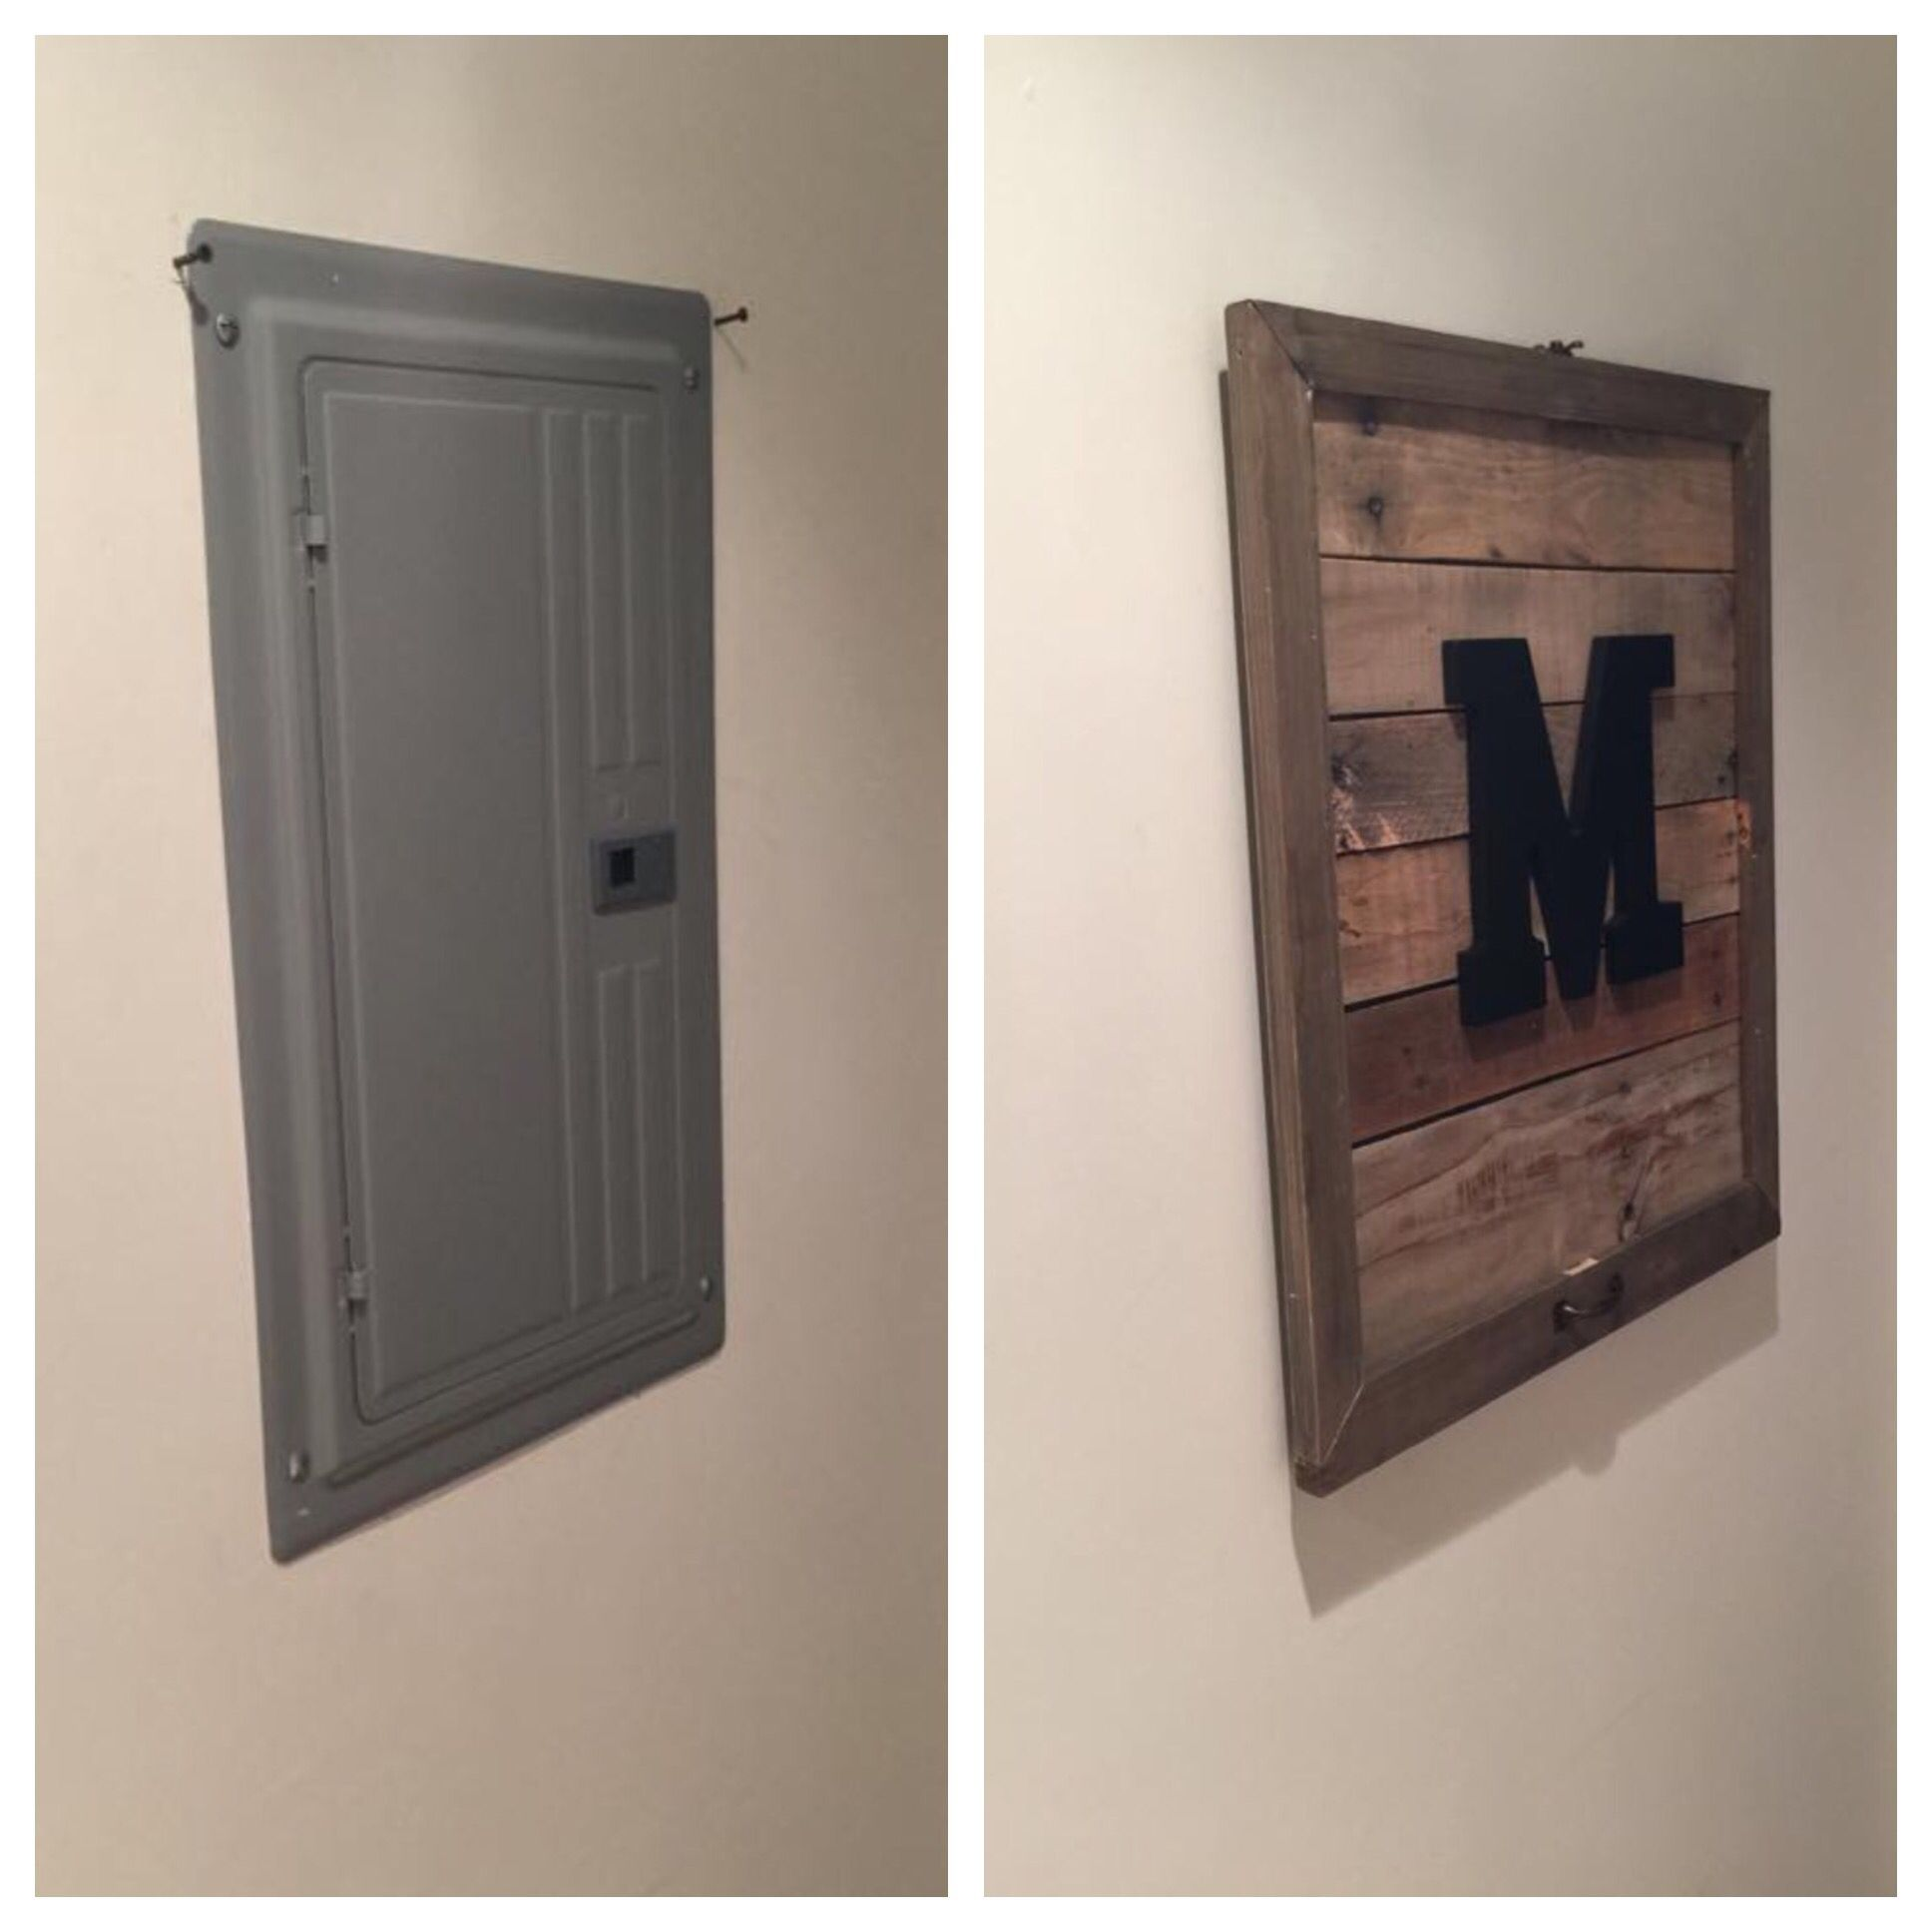 pallet monogram electrical box cover | Home decor | Pinterest ...